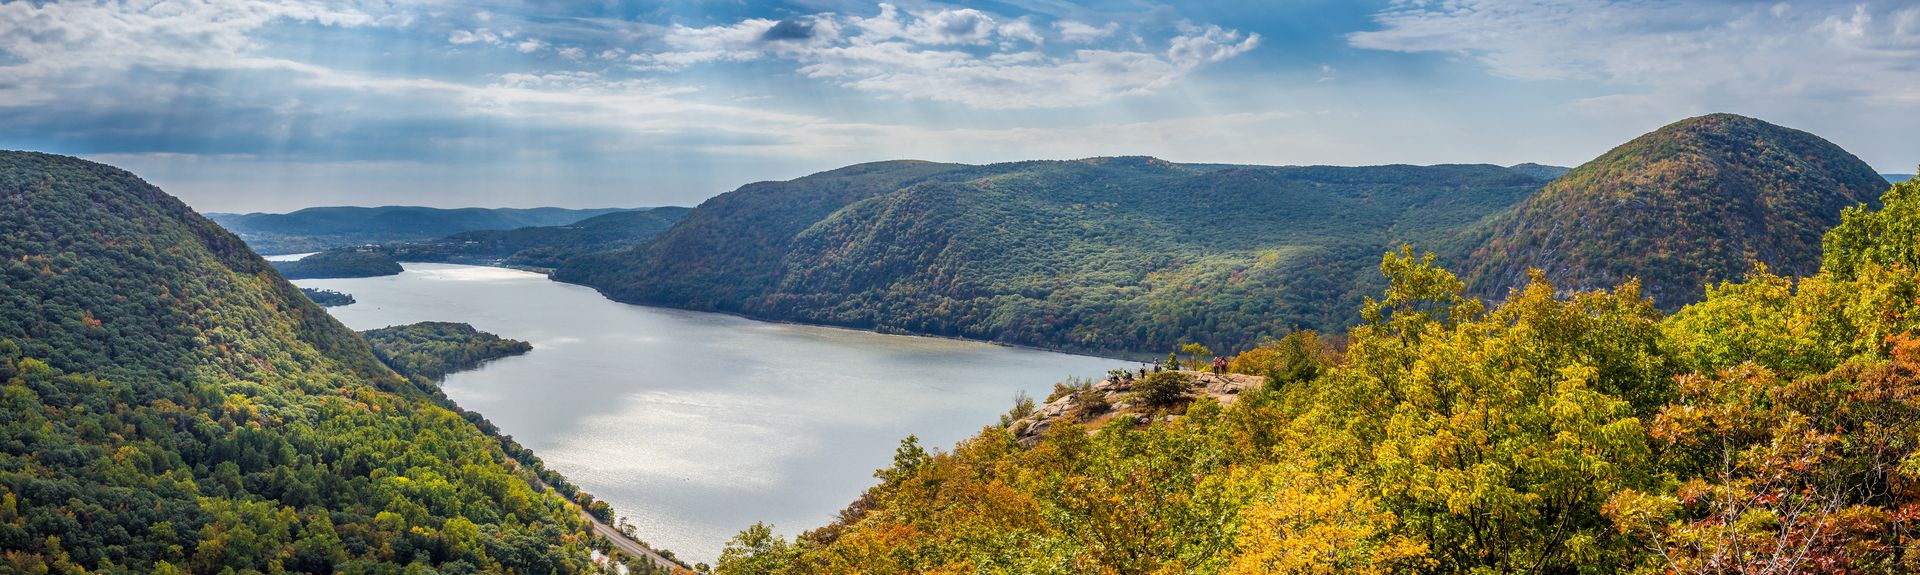 Hudson Valley, New York, United States of America